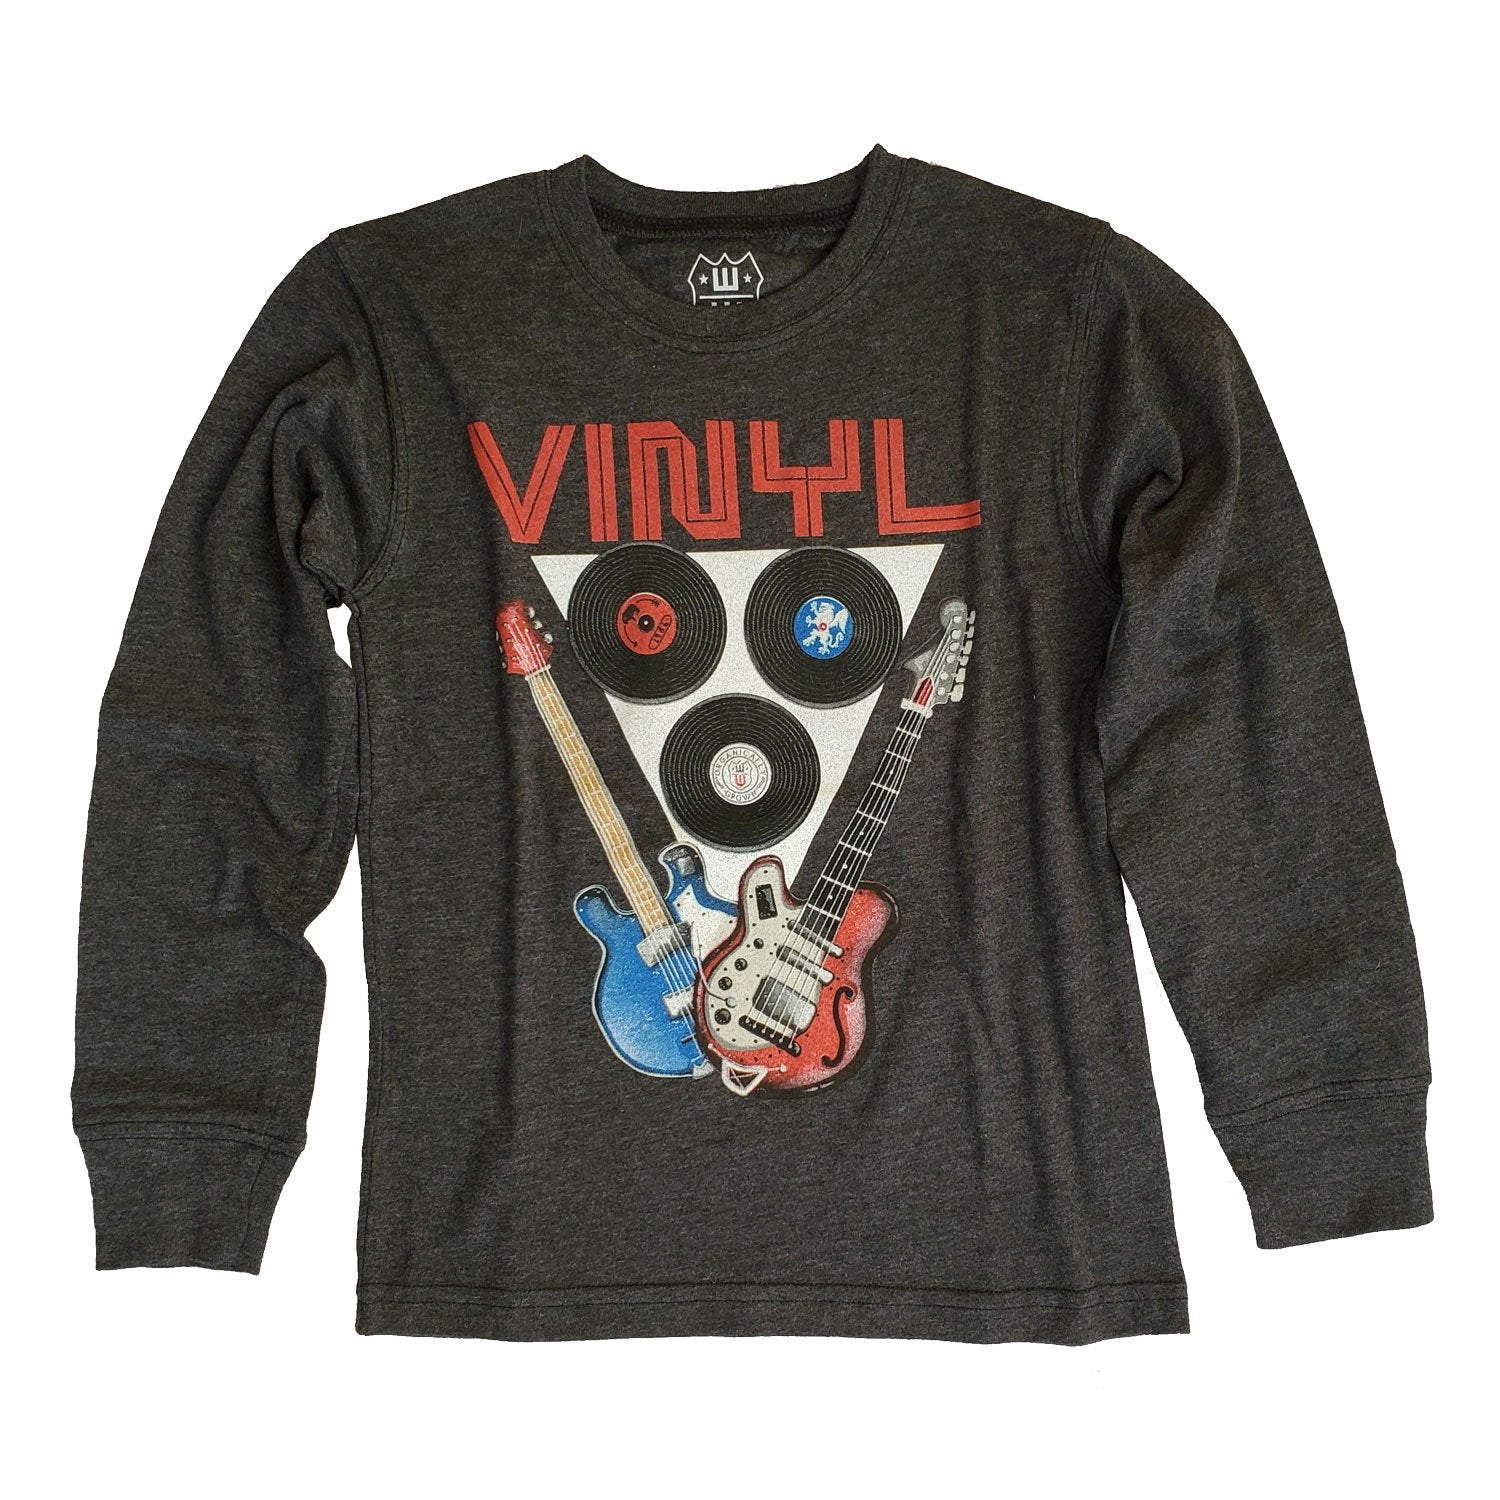 Boys' Vinyl Shirt by Wes and Willy - The Boy's Store